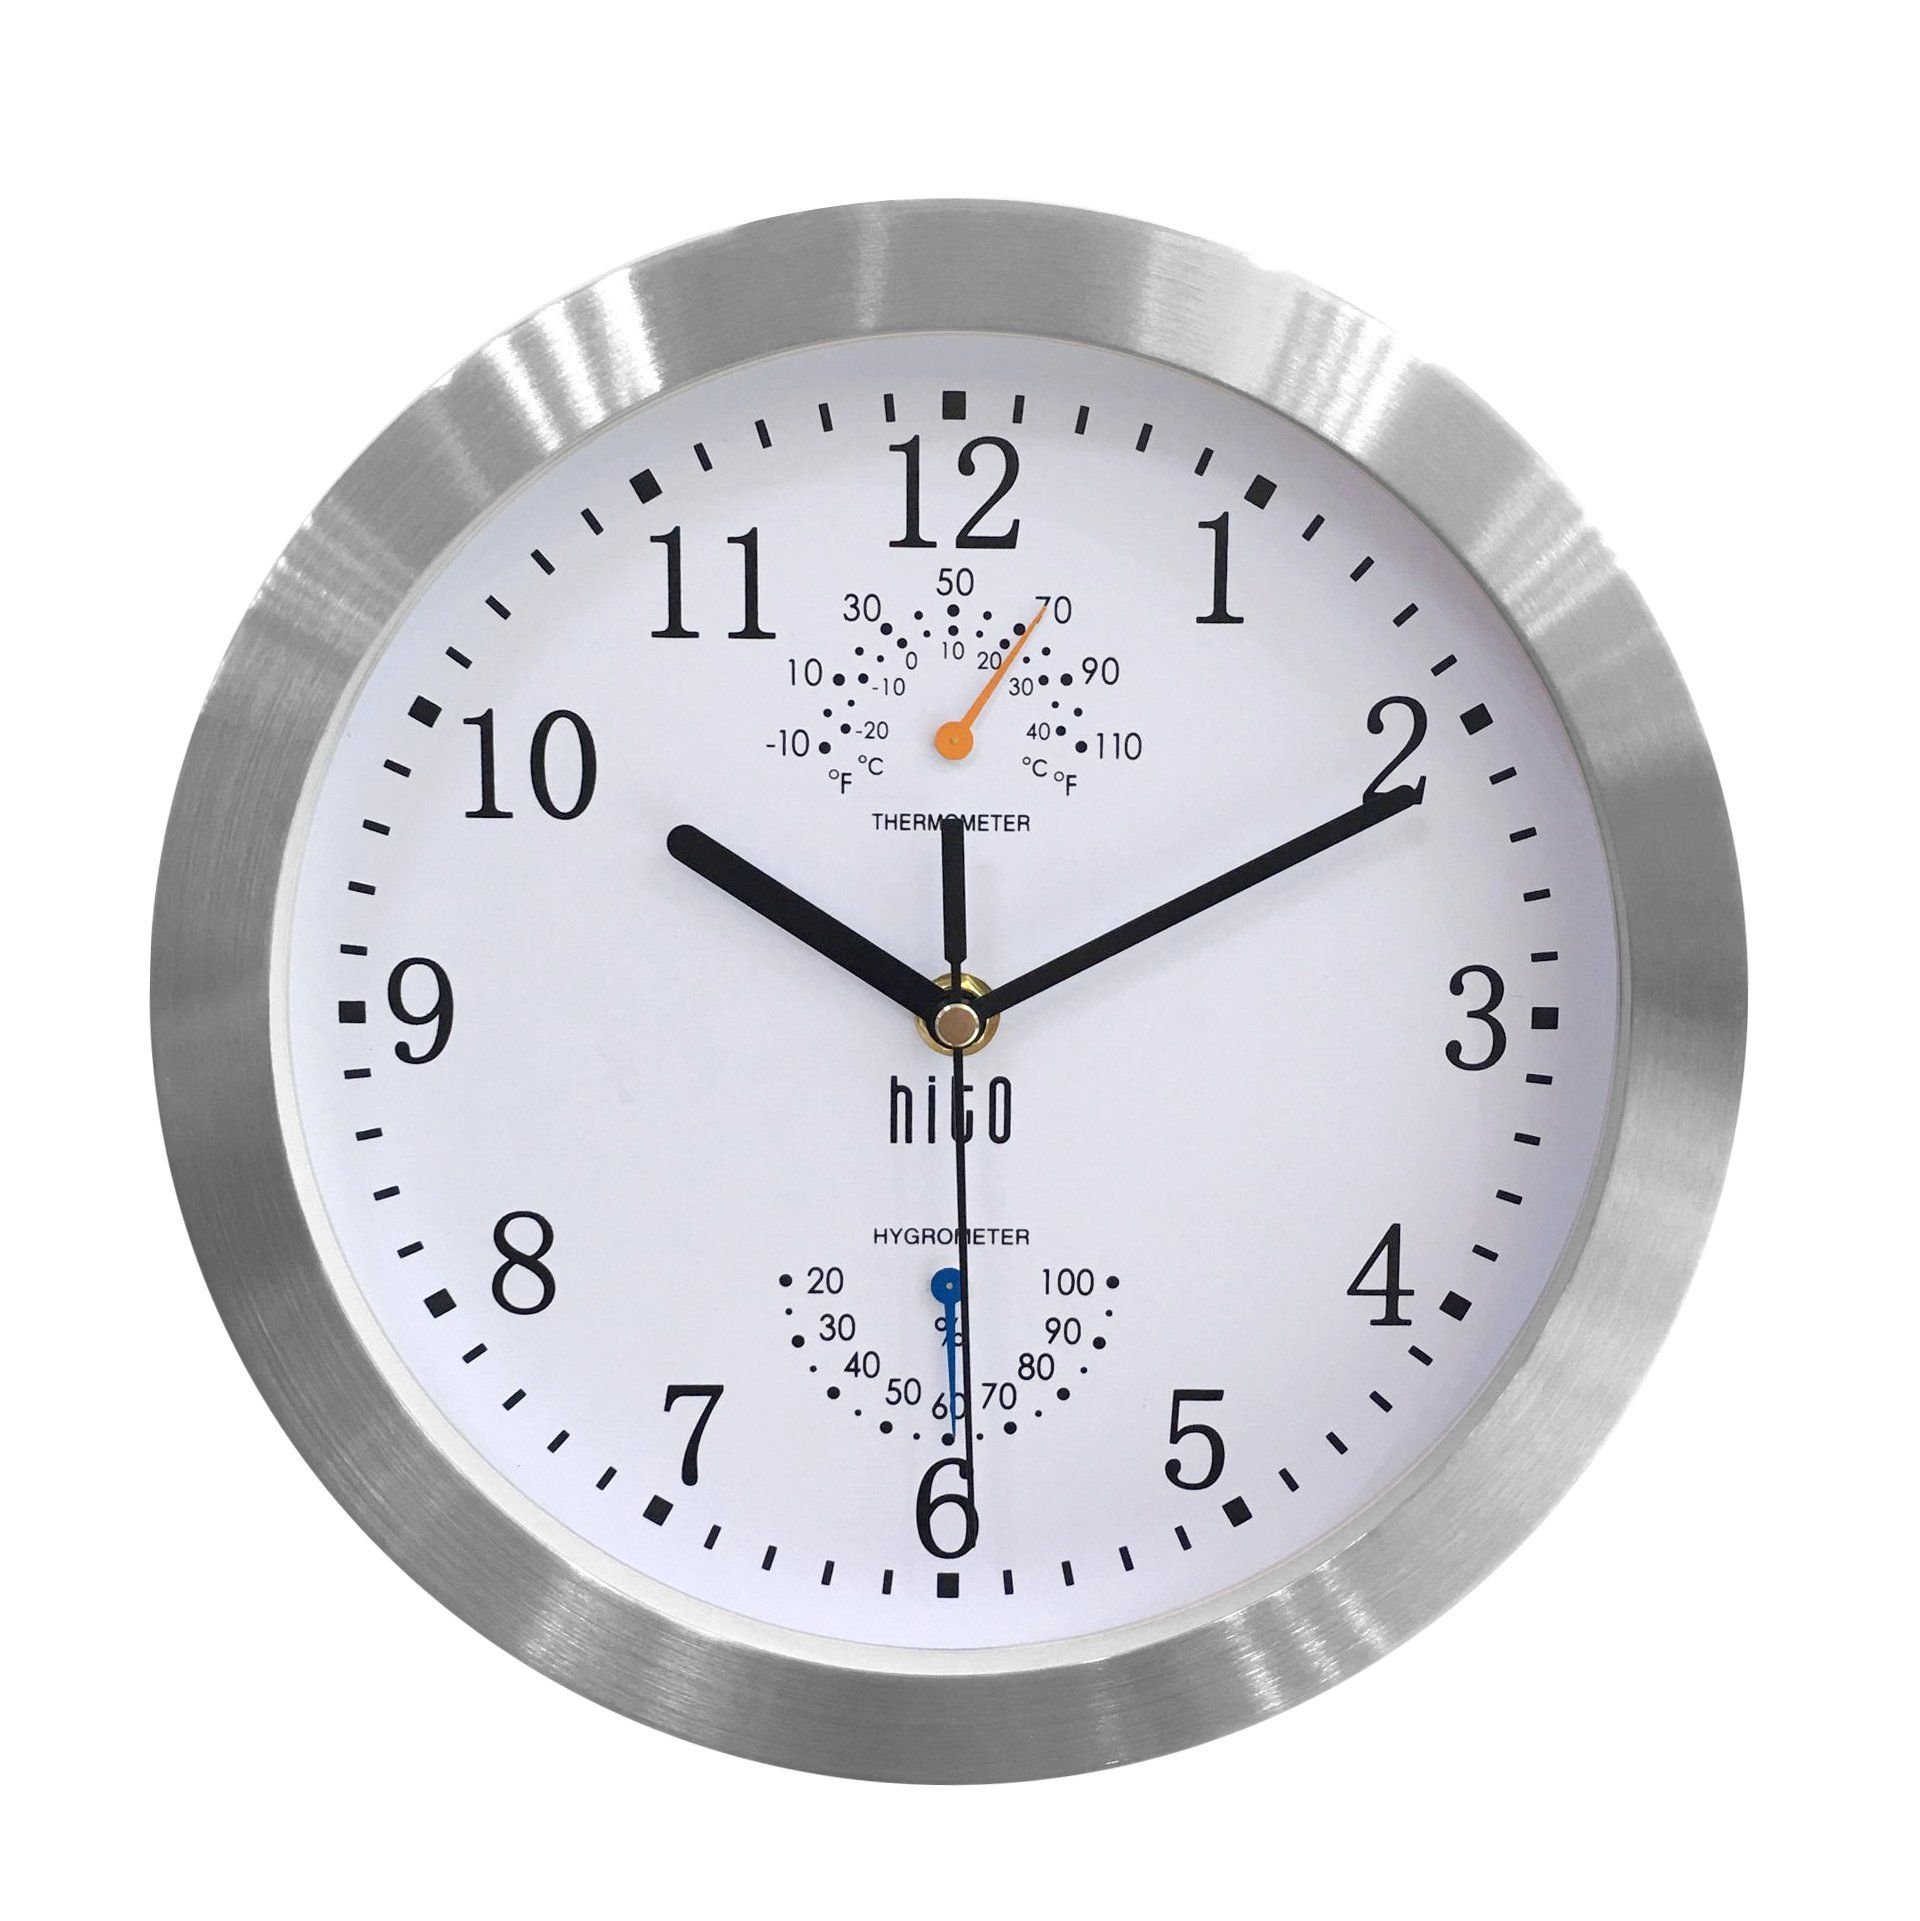 Hito Modern Silent Wall Clock Non Ticking 10 Inch Excellent Accurate Sweep Movement Silver Aluminum Frame Glass Cover Decorative For Kitchen Living Room Bedr Med